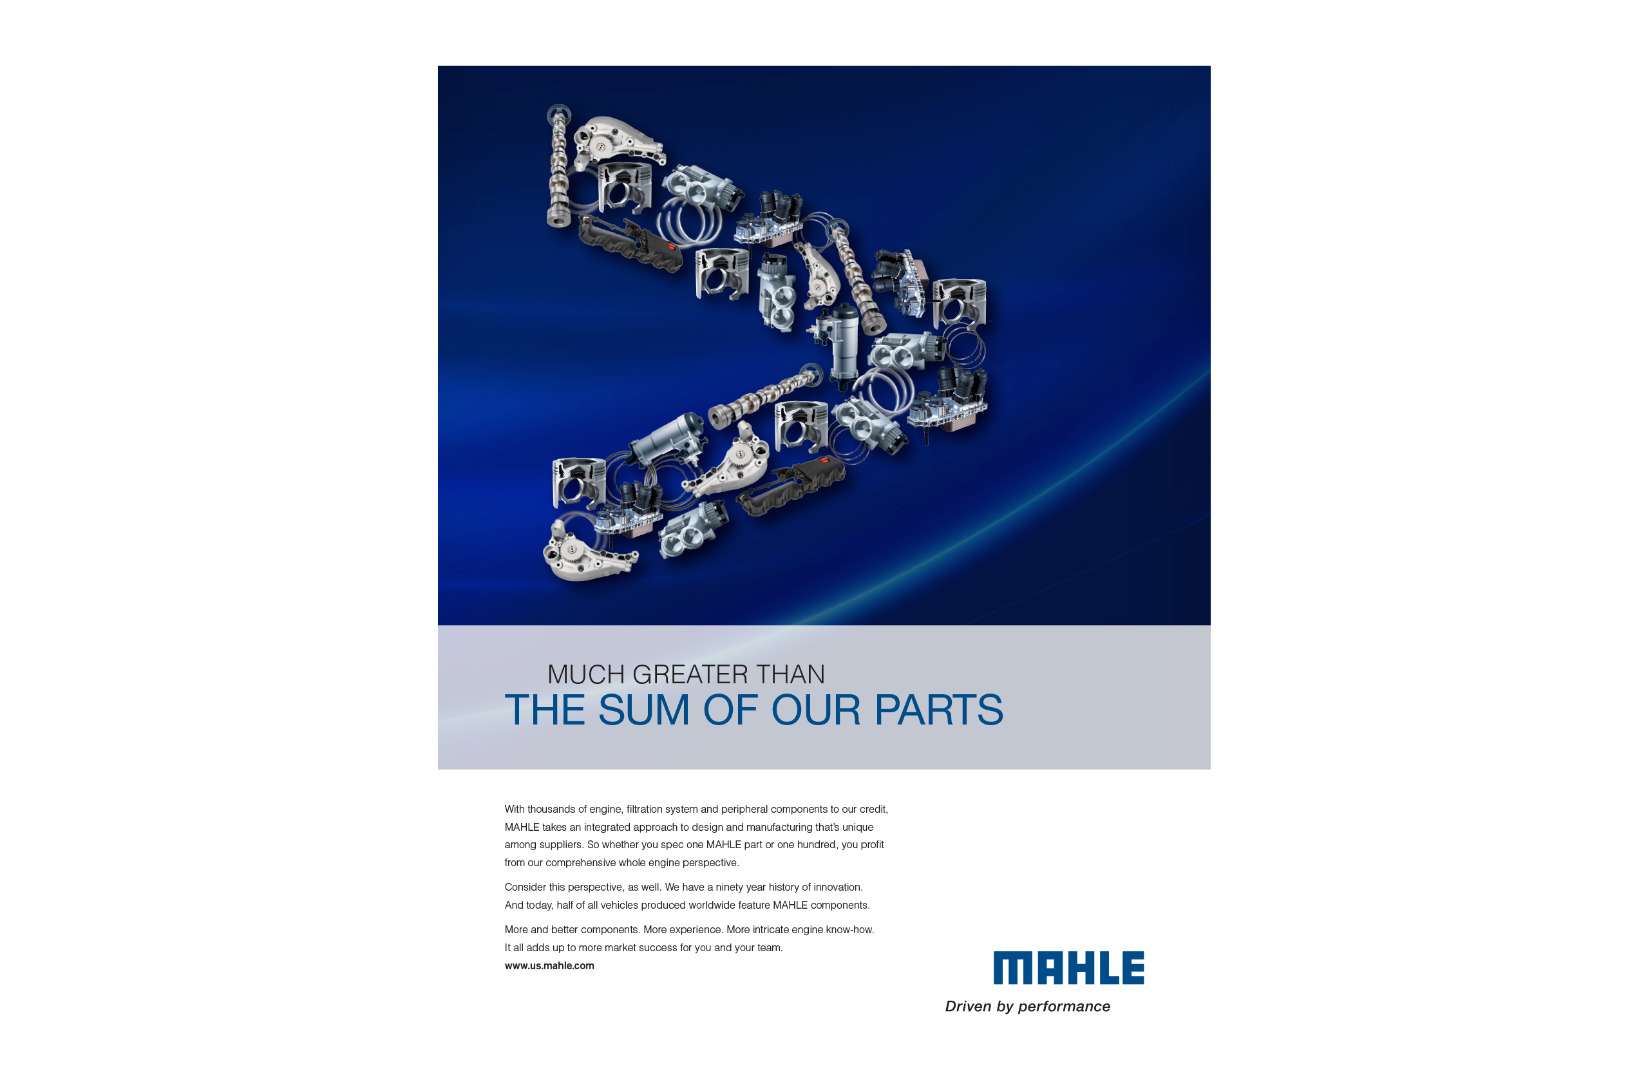 The Sum of Our Parts Print Campaign Ad 1